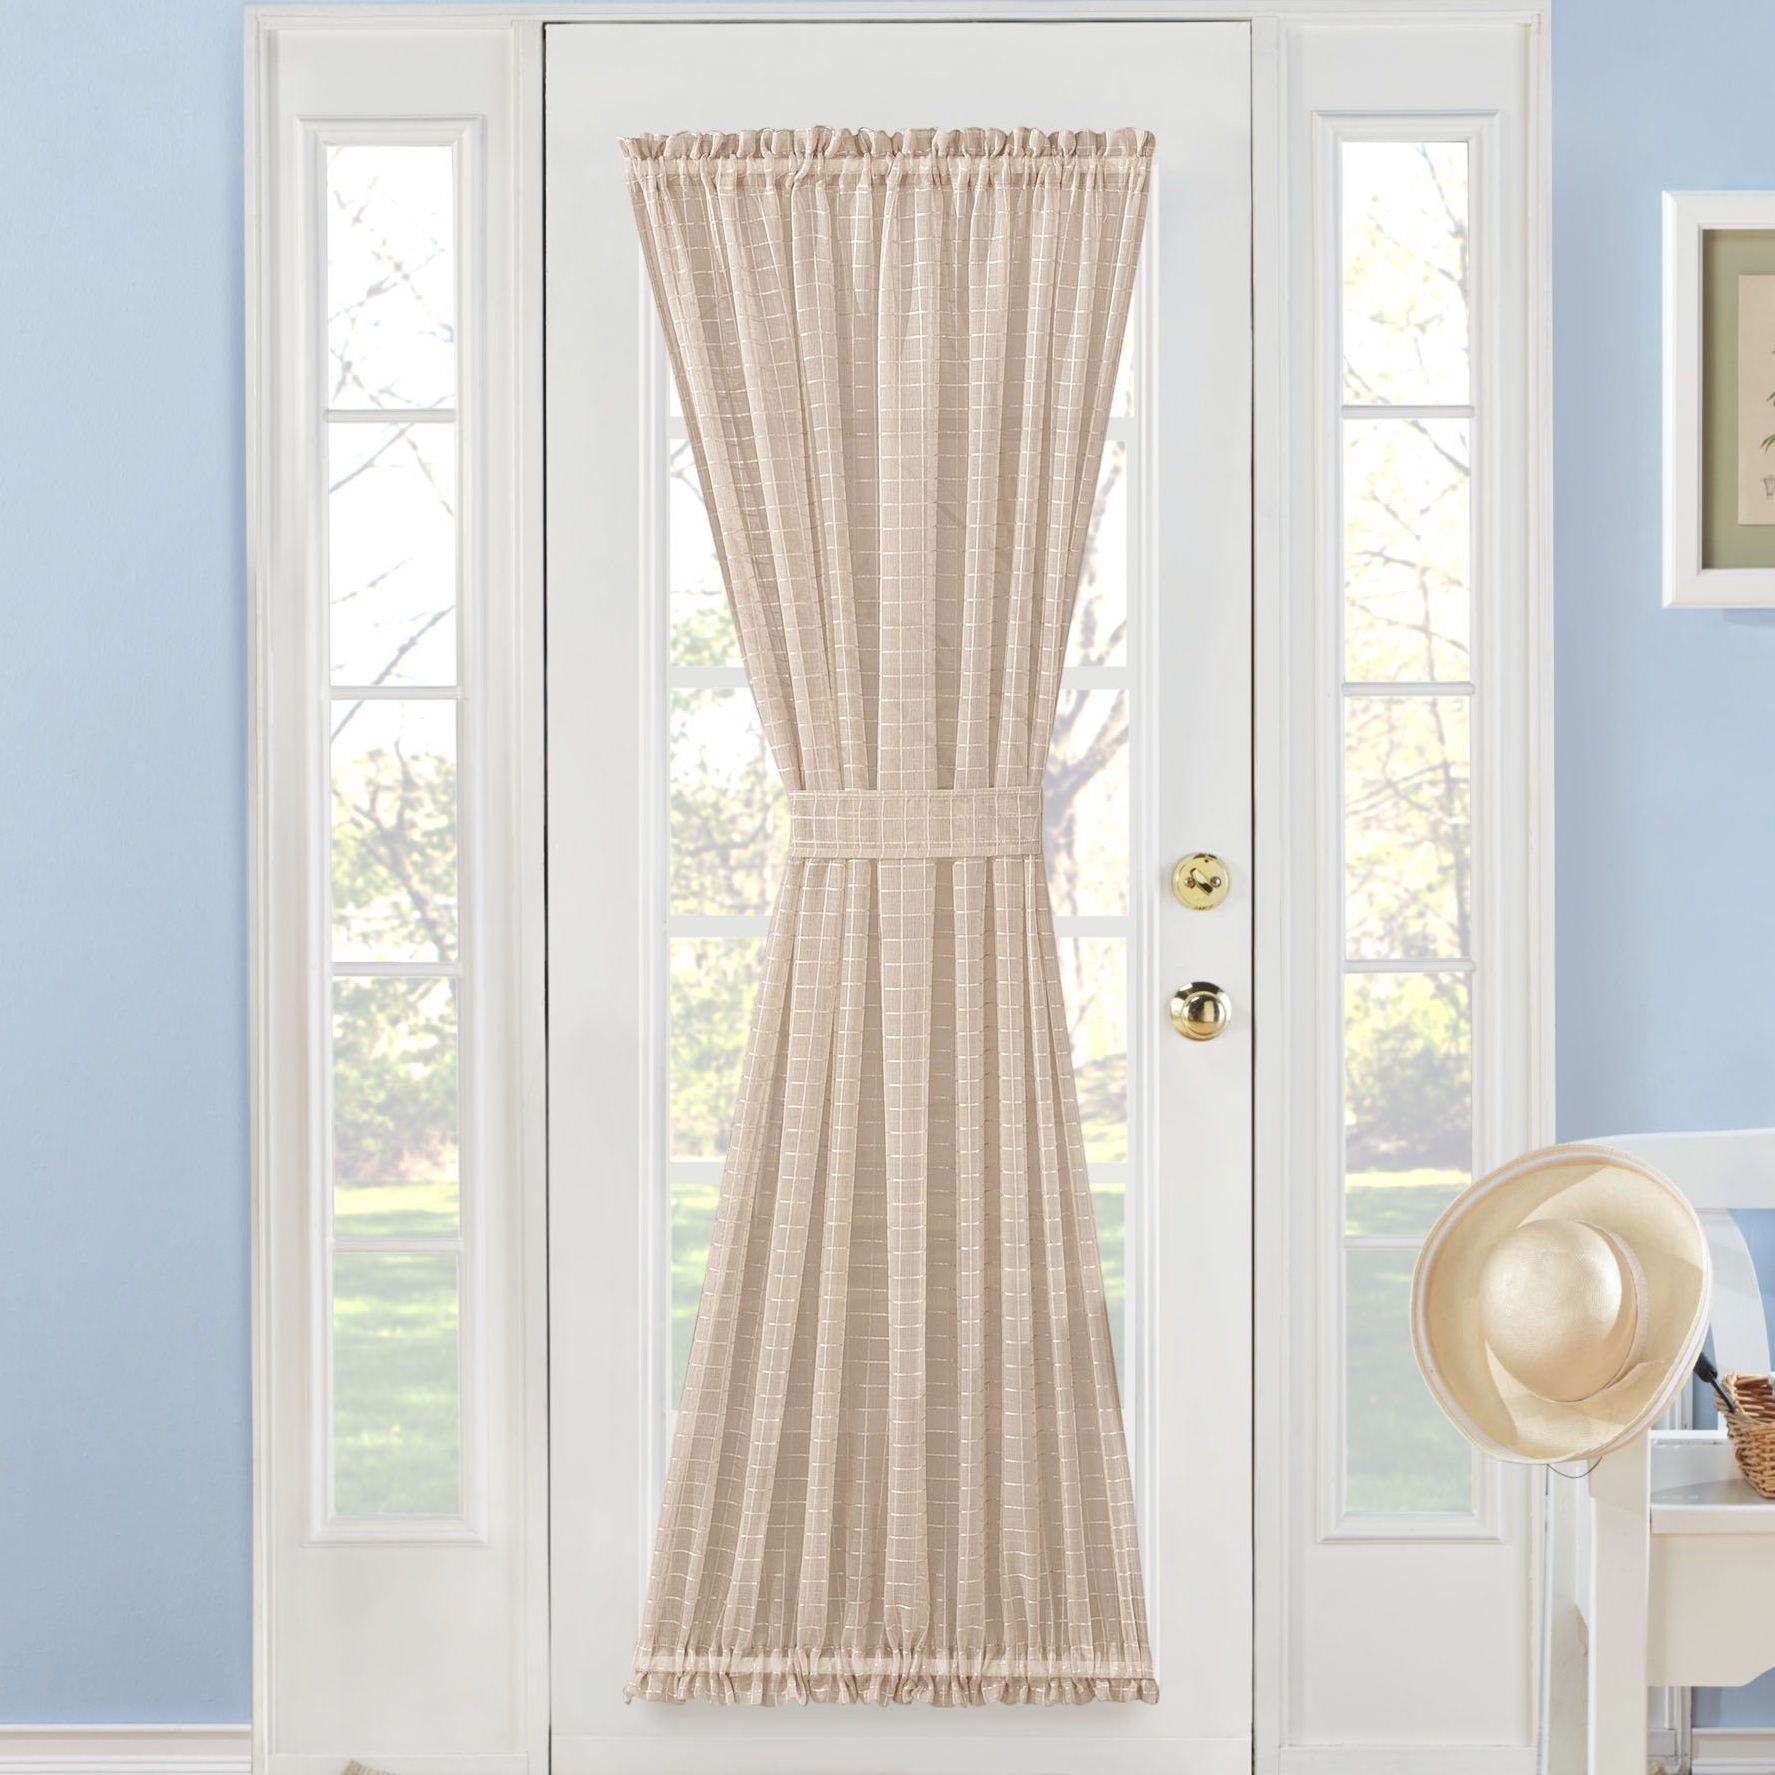 36 Inch Room Darkening Curtains Types Of Curtains Touch Of Class